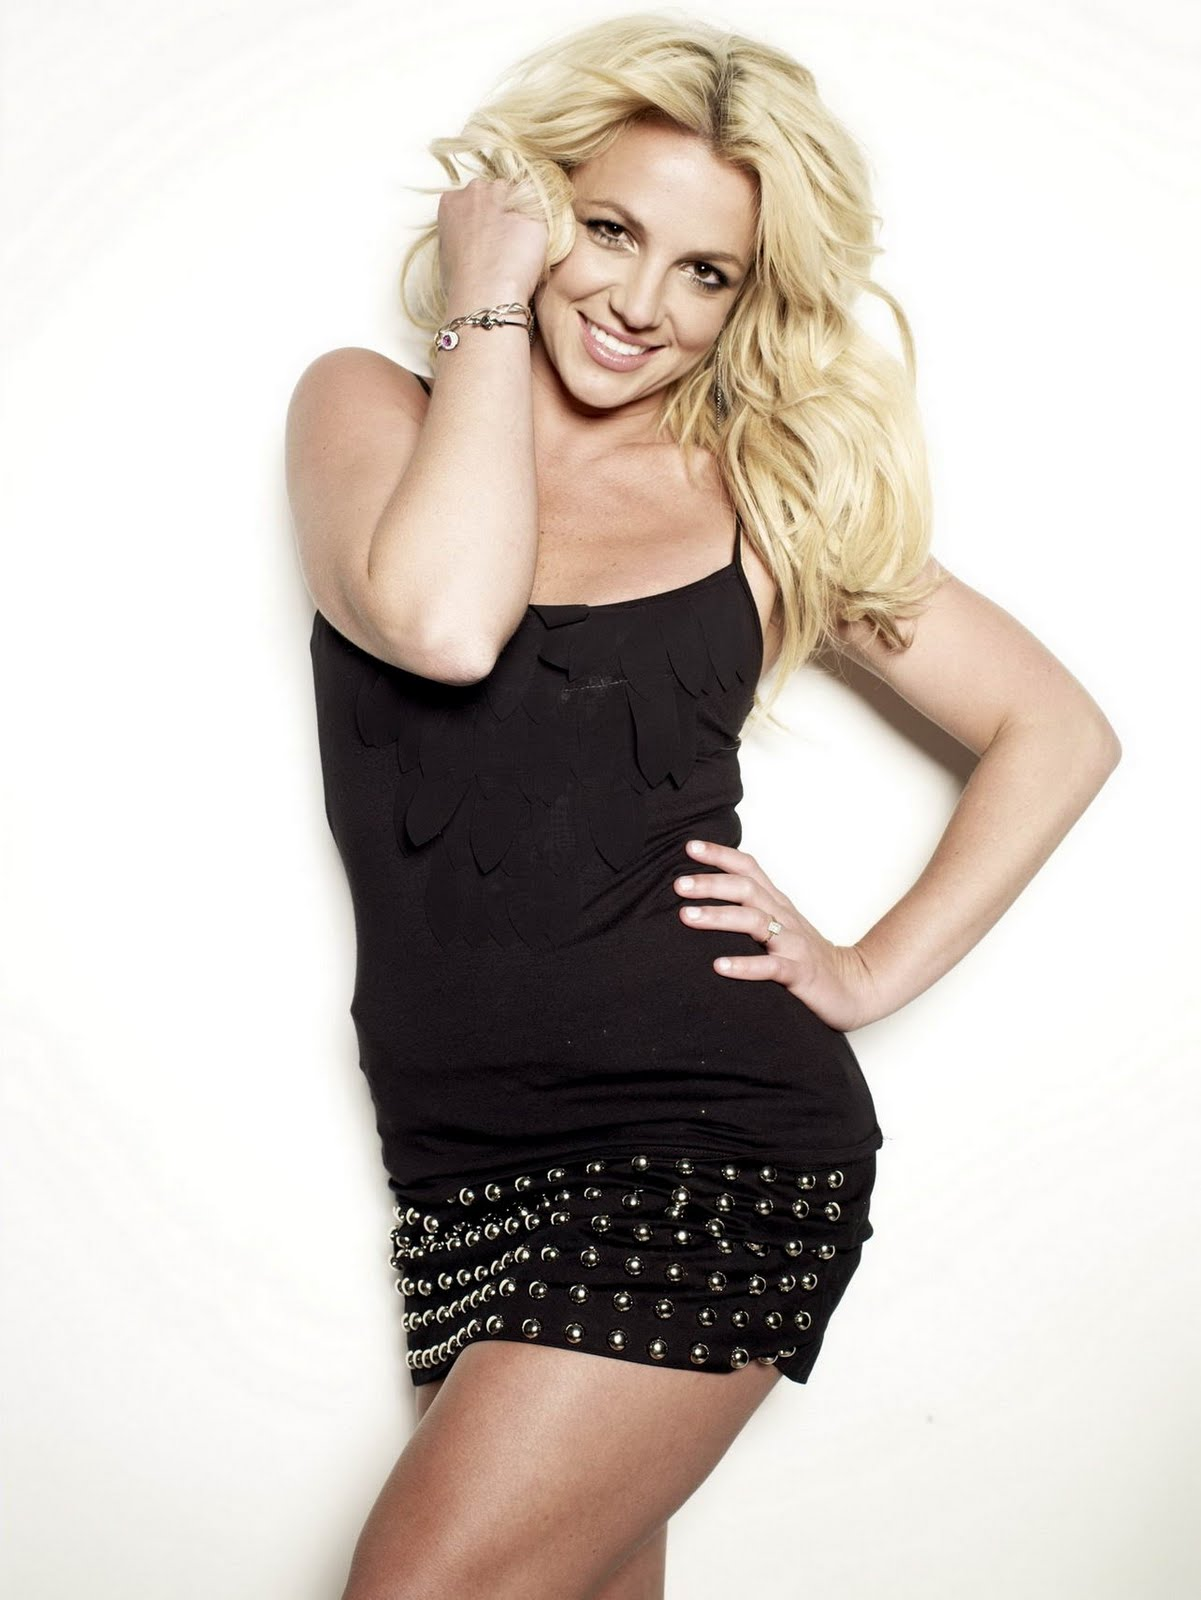 http://1.bp.blogspot.com/-2emSxmNI6Jg/ToaKeGUdN0I/AAAAAAAAAdc/wqj0hSLal64/s1600/Britney+Spears+in+black+mini+dress+for+Cosmo+%25288%2529.jpg